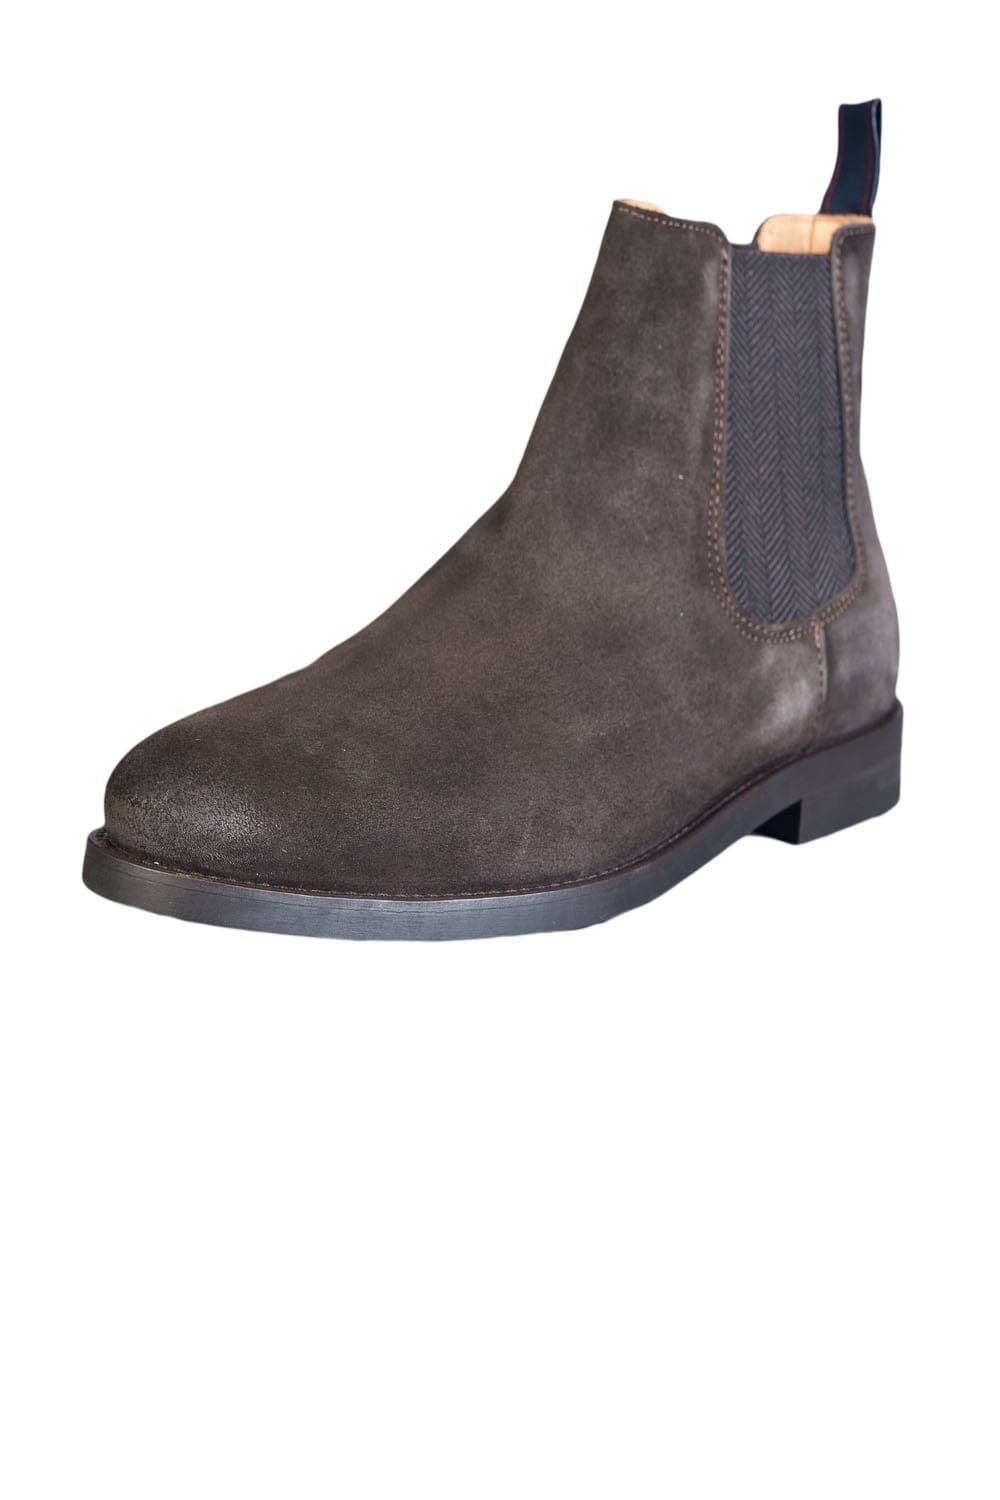 3b37c34031e Gant Boots MAX 13653354 G00 - Footwear from Sage Clothing UK